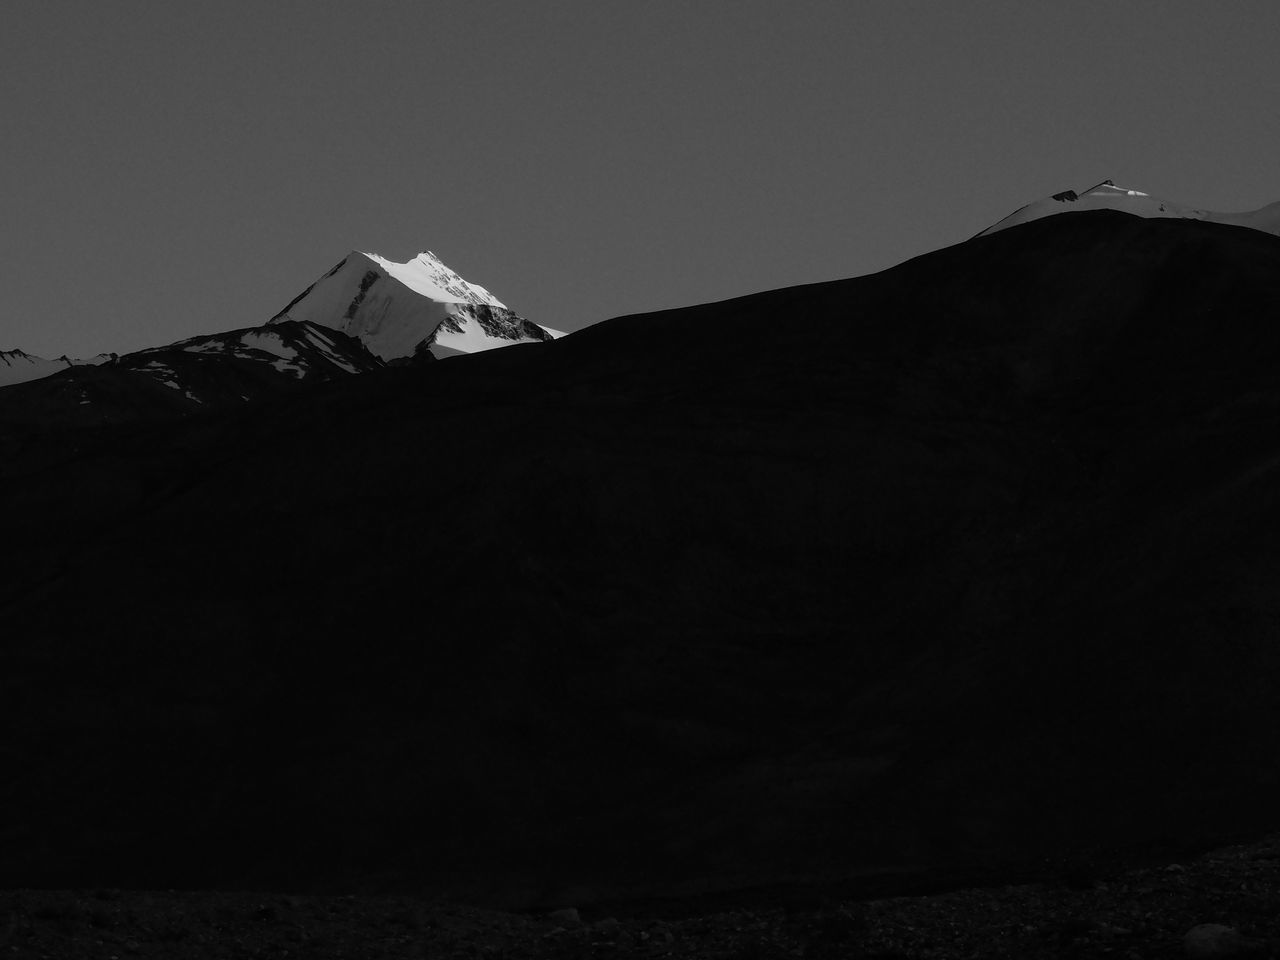 Architecture Beauty In Nature Black And White Dark Jammu And Kashmir Leh Ladakh Mountain Nature Night No People Outdoors Pangong Lake Pangong Tso Sky Tree EyeEmNewHere